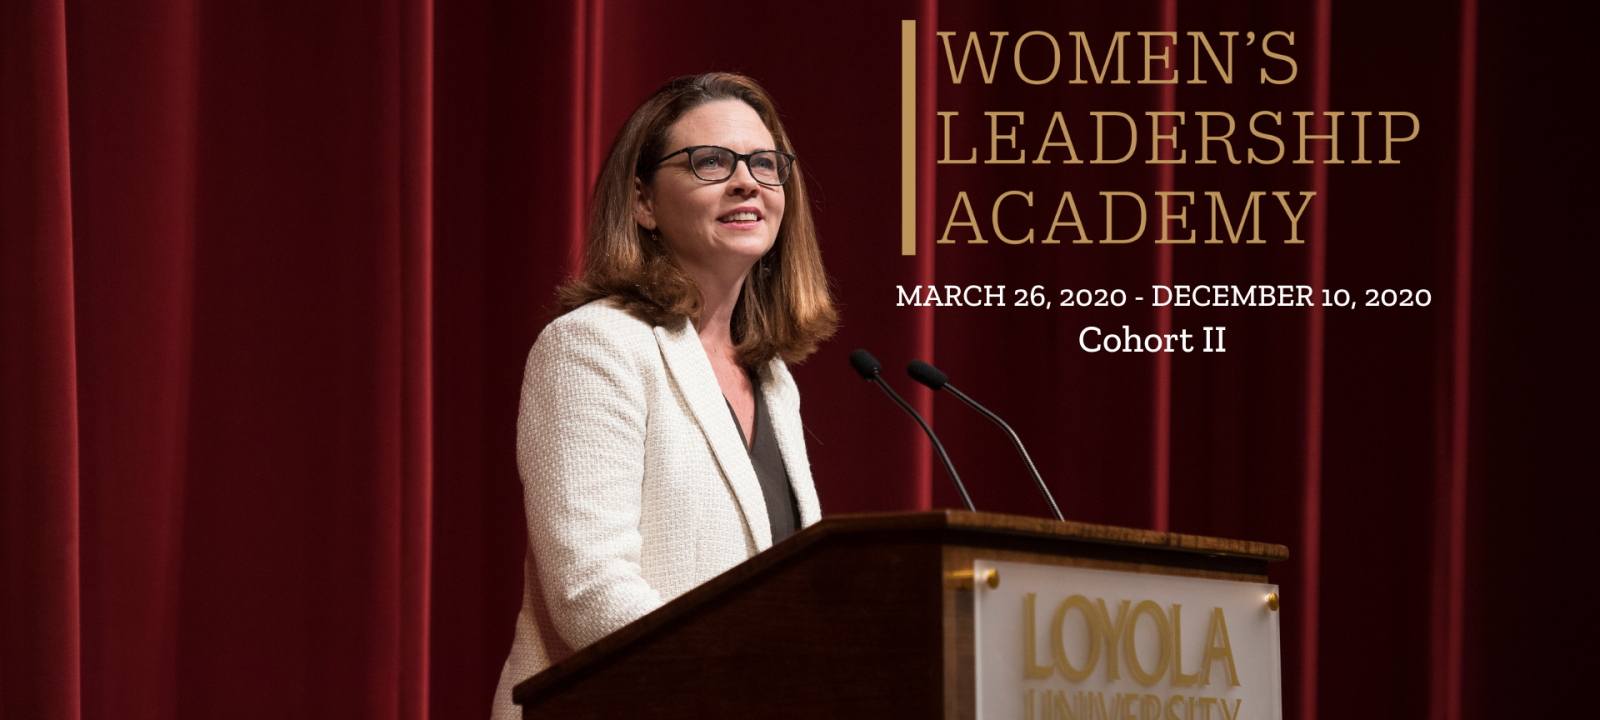 Stay tuned for the new Women's Leadership Academy website for updates!